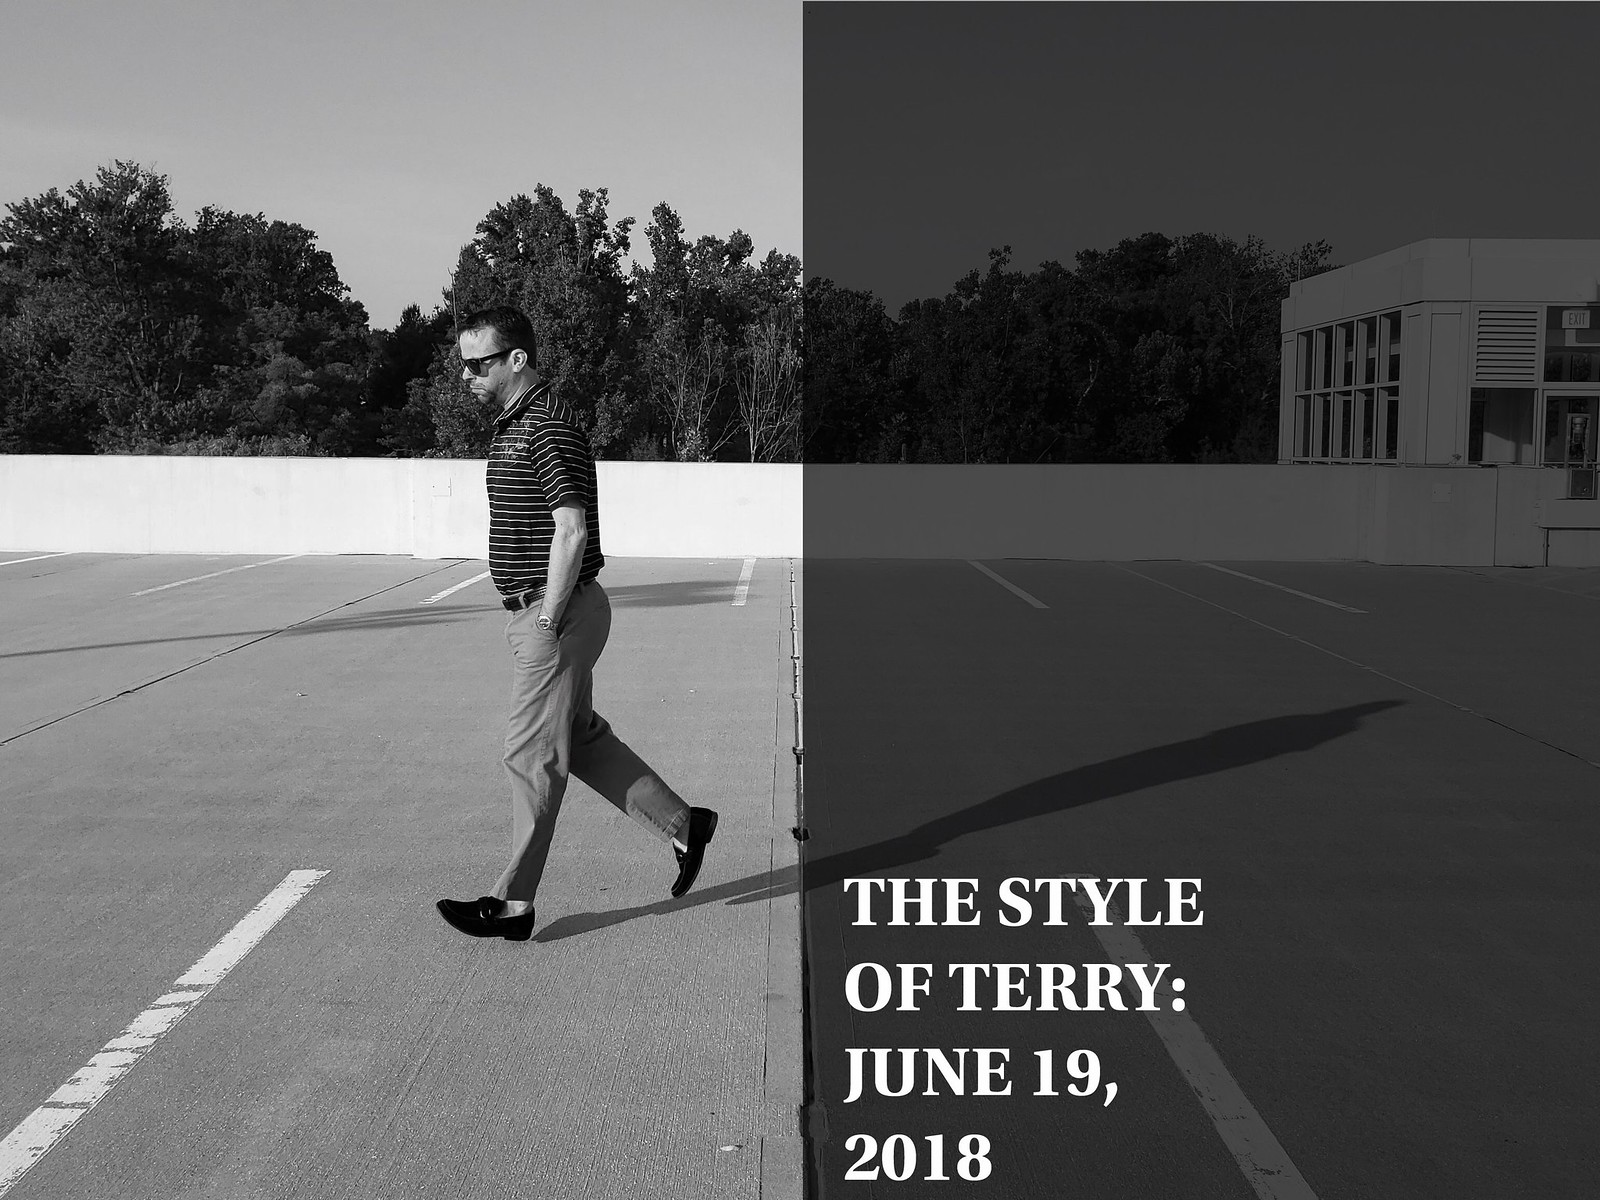 The Style of Terry: 6.19.18